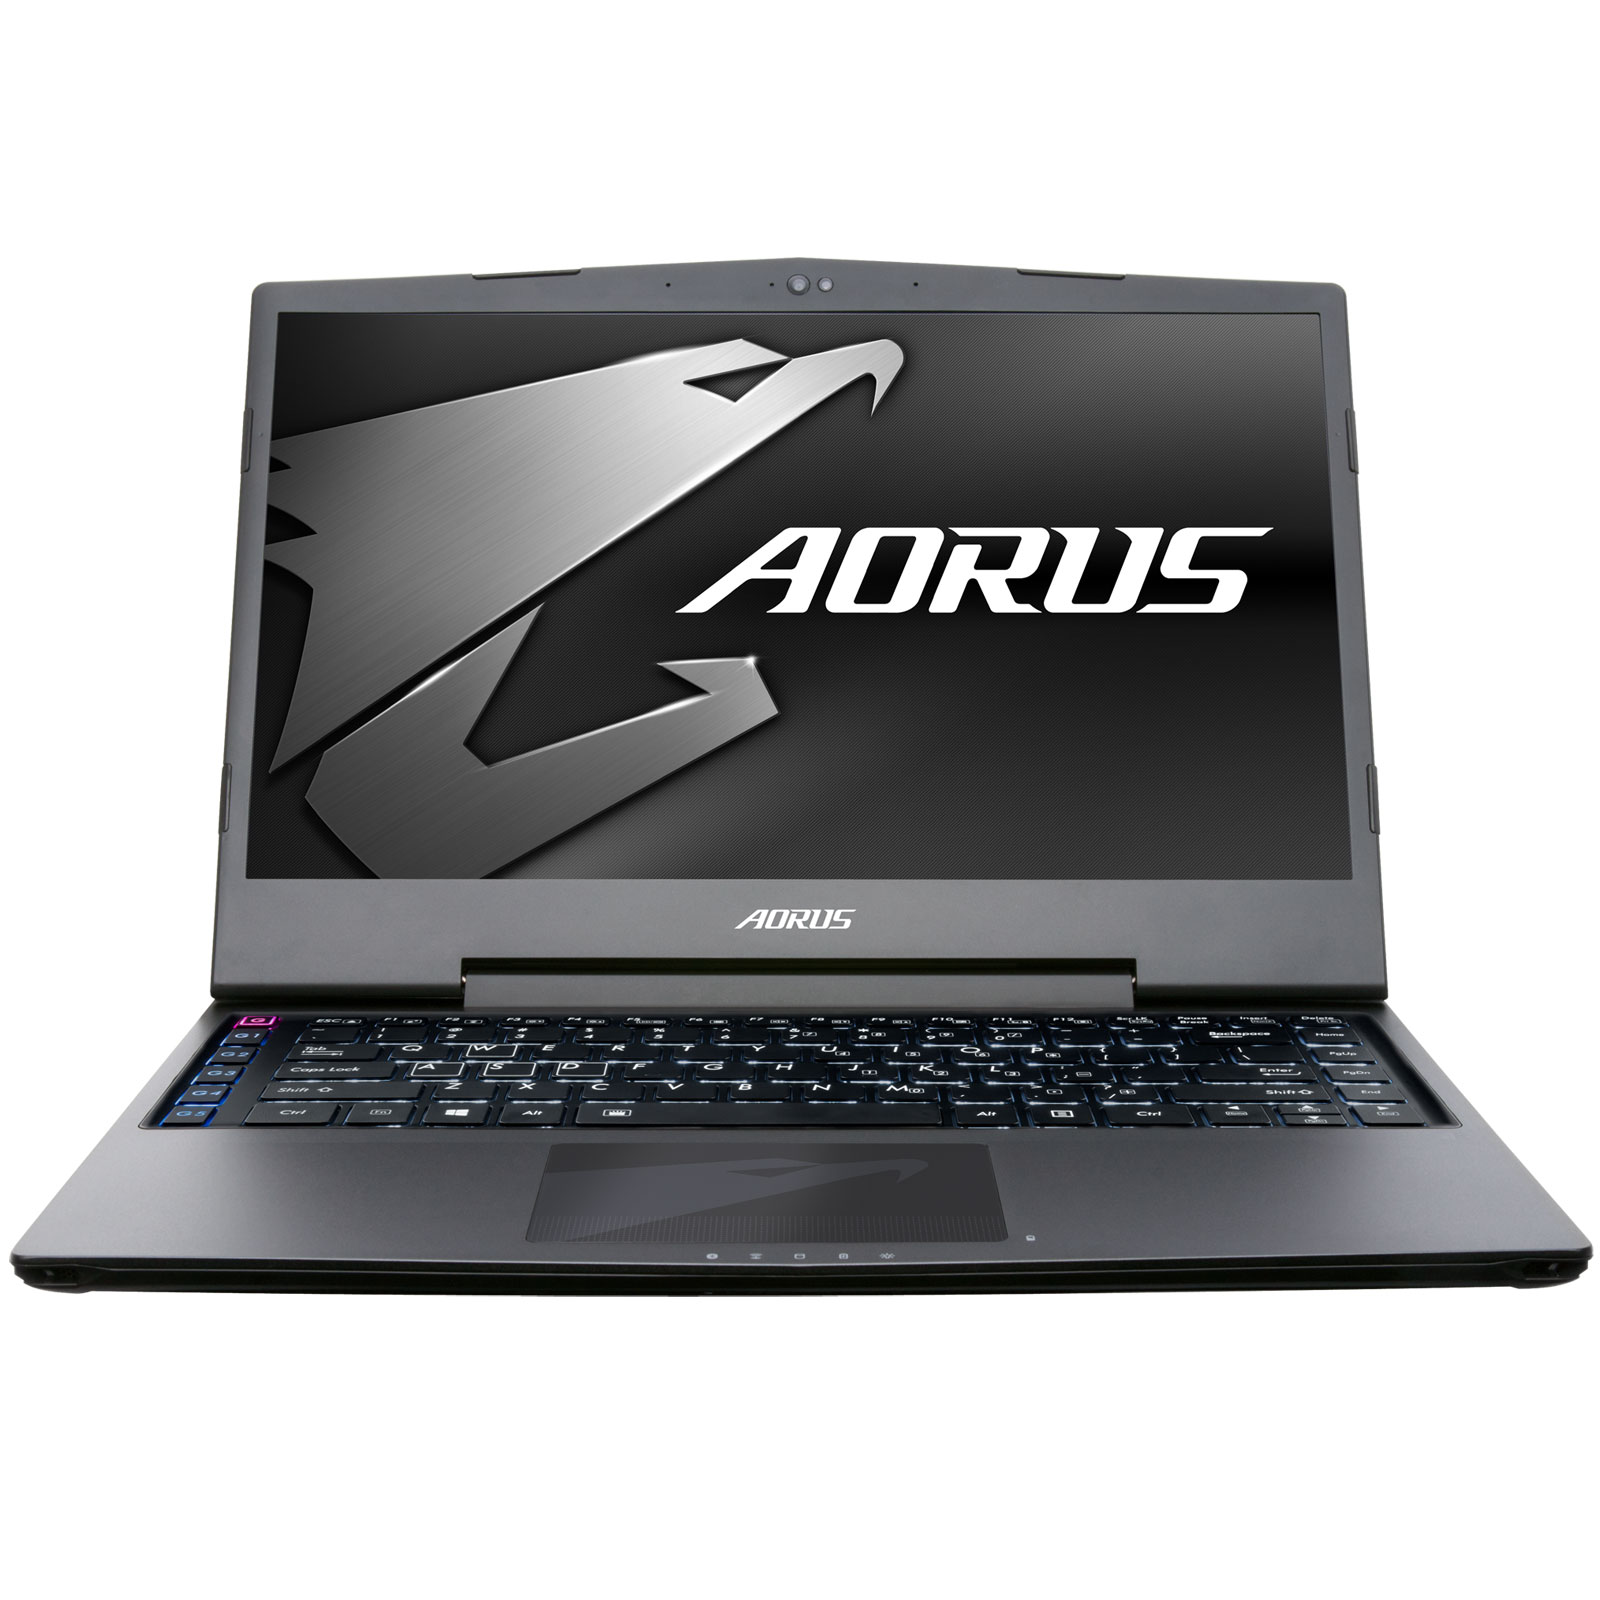 "PC portable AORUS X3 Plus v6 K1NW10-FR Intel Core i7-6820HK 16 Go SSD 512 Go 13.9"" LED QHD+ NVIDIA GeForce GTX 1060 Wi-Fi AC/Bluetooth Webcam Windows 10 Famille 64 bits"